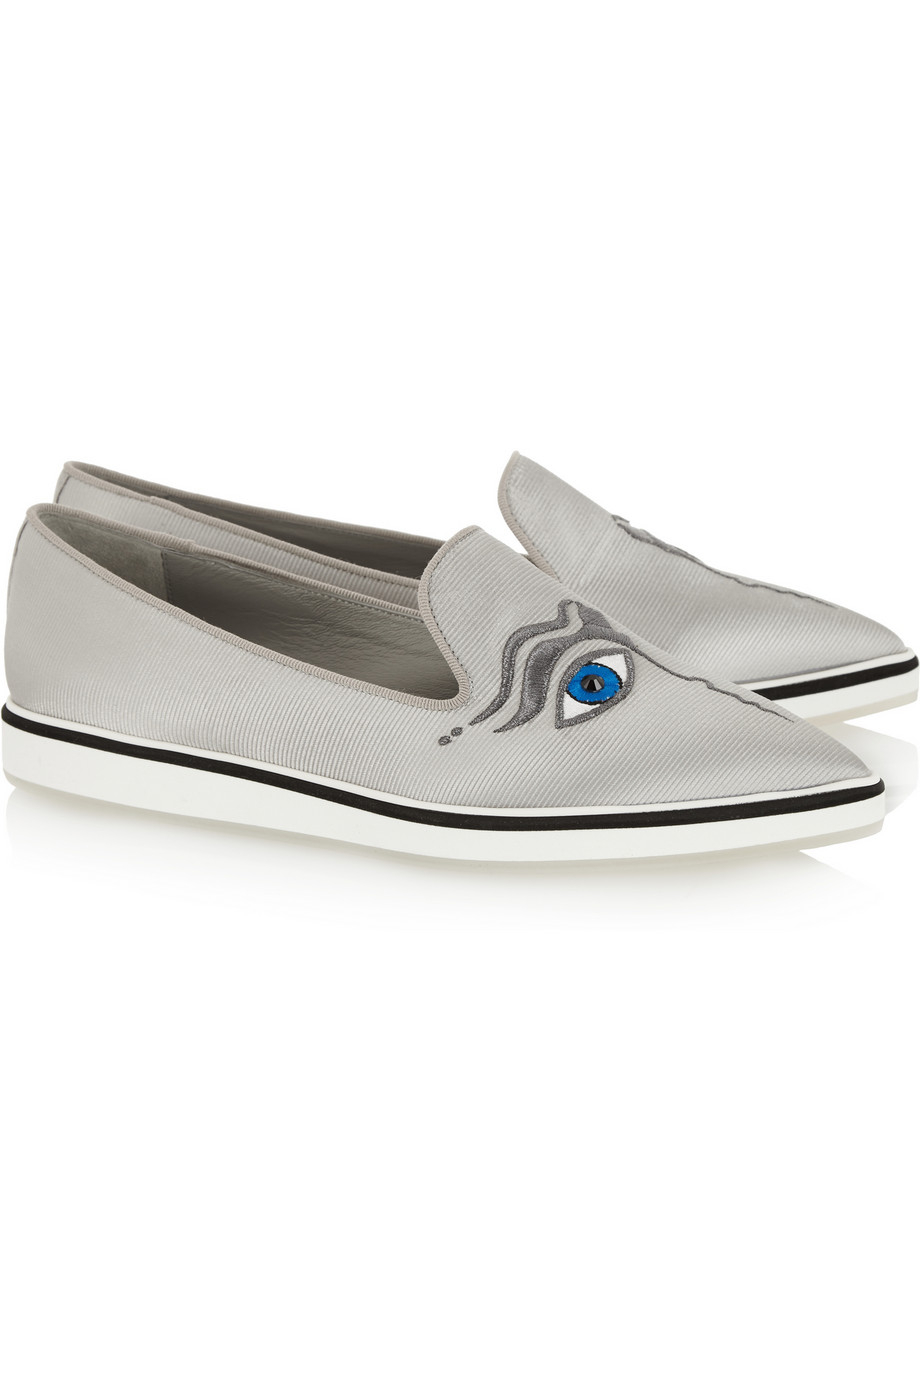 5226468a3843 Lyst - Nicholas Kirkwood Iris Embroidered Faille Point-Toe Flats in Gray